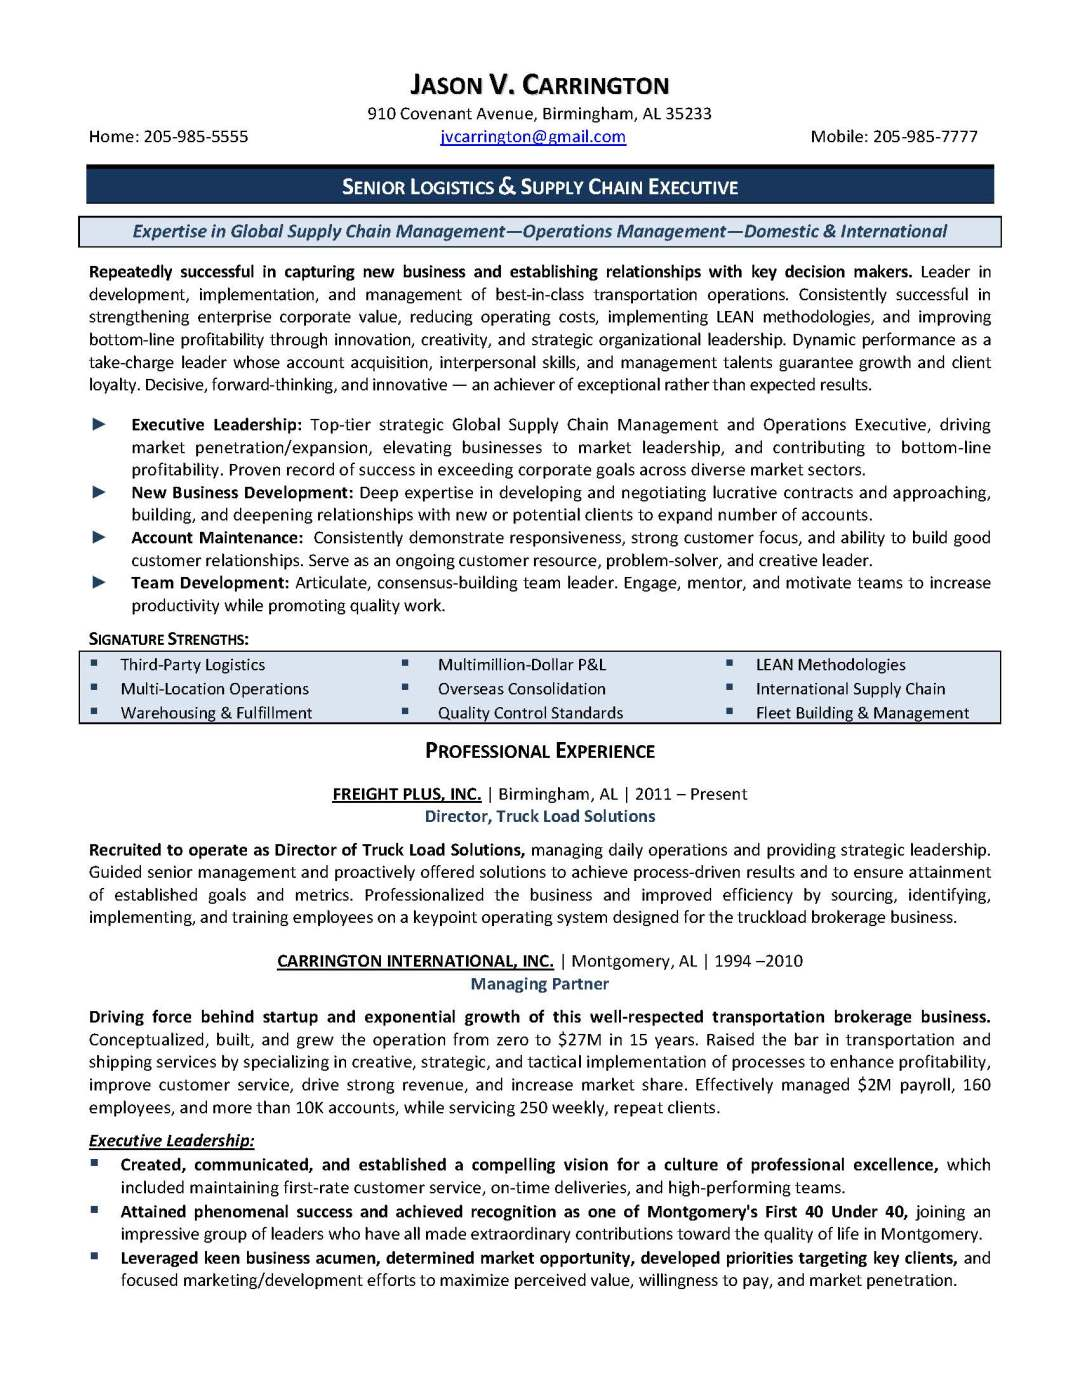 senior logistics and supply chain executive resume sample, provided by Elite Resume Writing Services